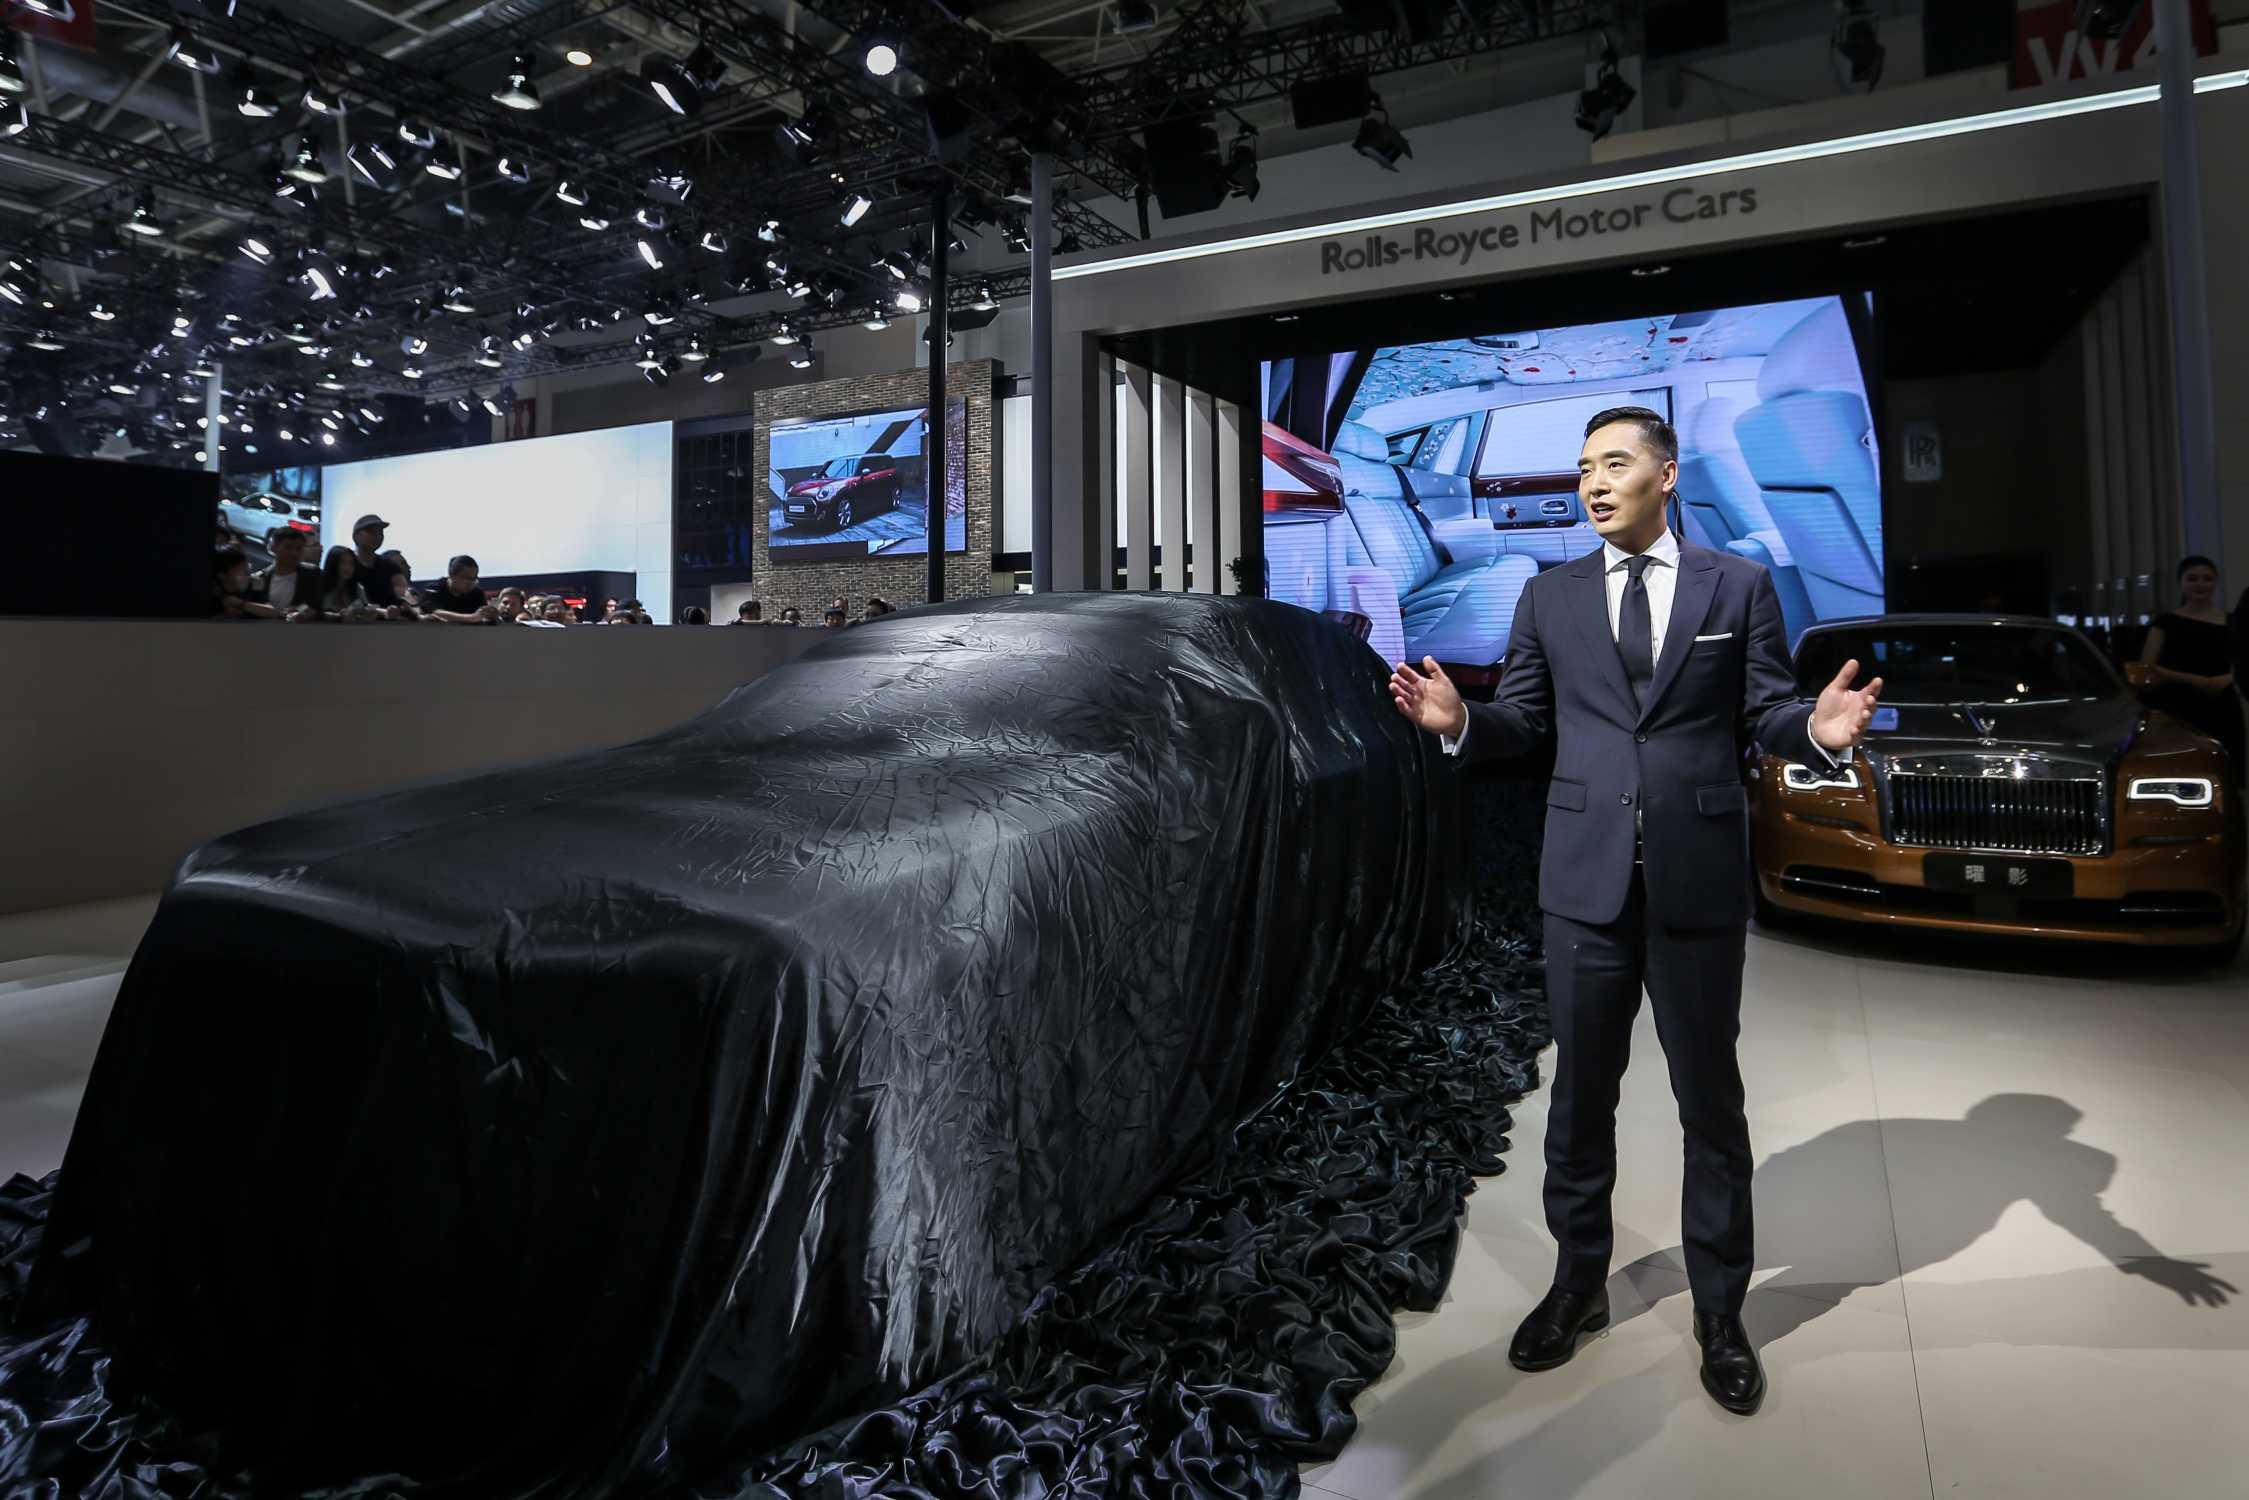 THREE DEBUTS FOR ROLLS ROYCE MOTOR CARS AT AUTO CHINA 2016